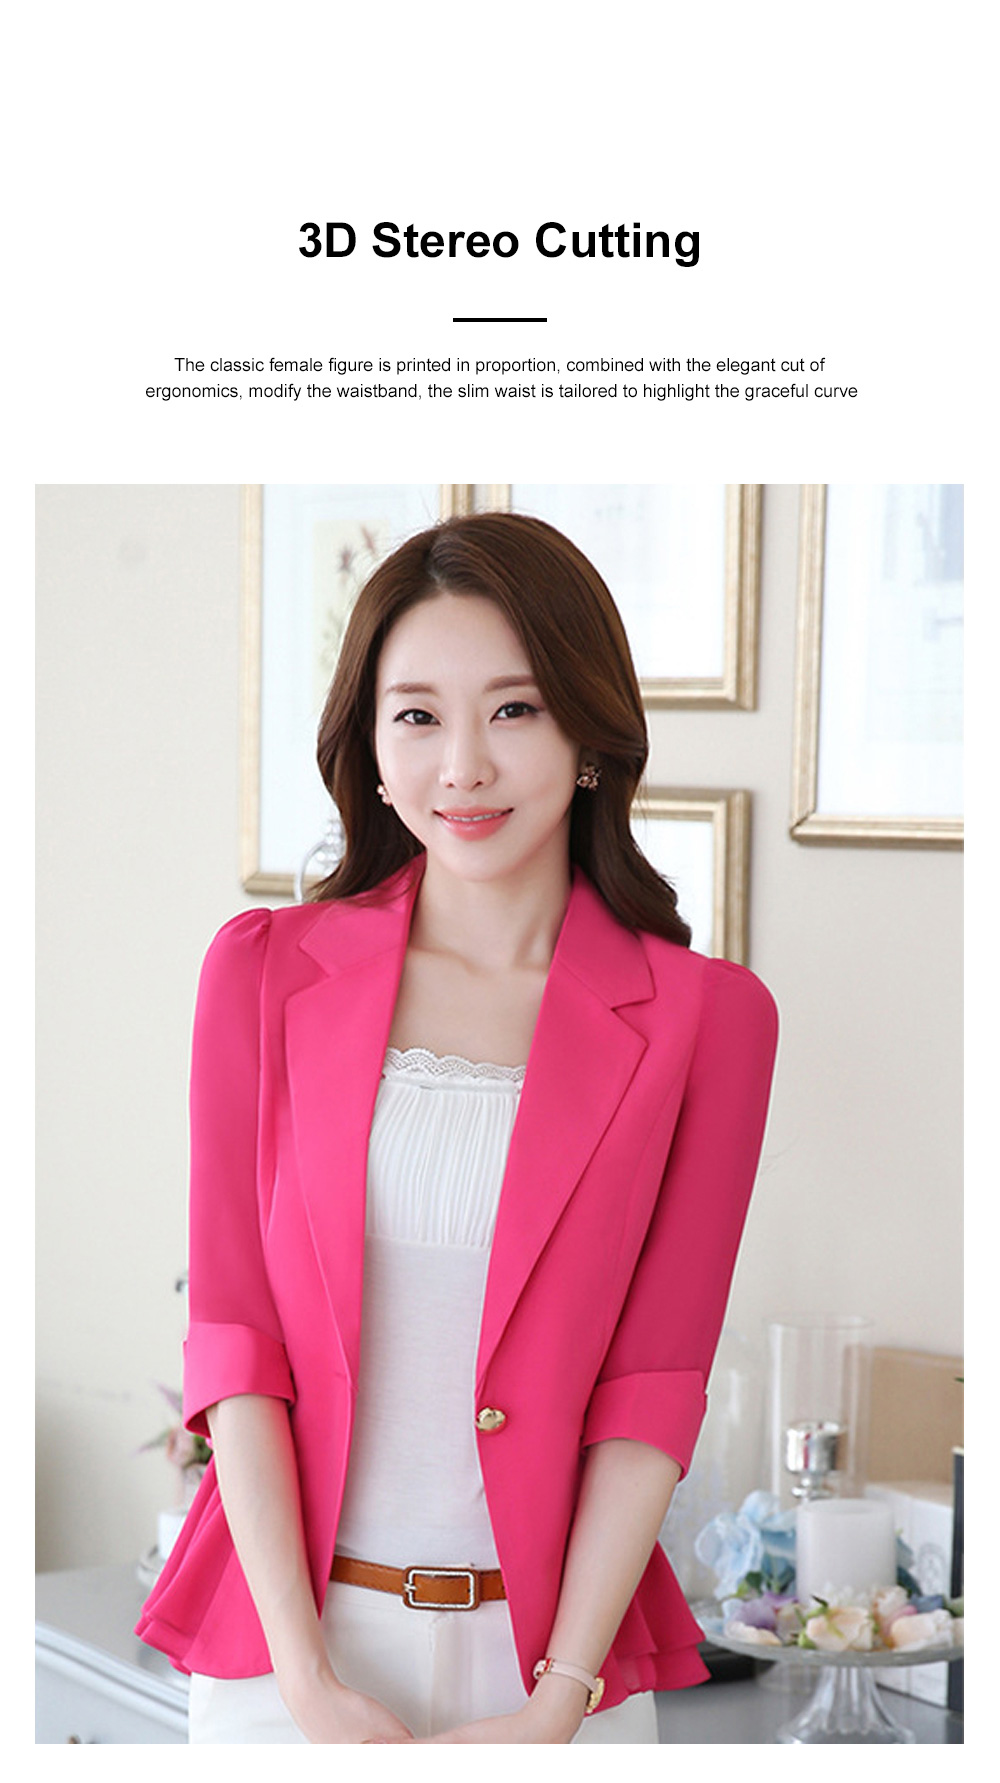 2019 Women New Design Fashion Formal Suit for Office Lady Work Wear Suit Seven-point Sleeves Ruffled Chiffon Women's Jacket Short Paragraph Slim 3